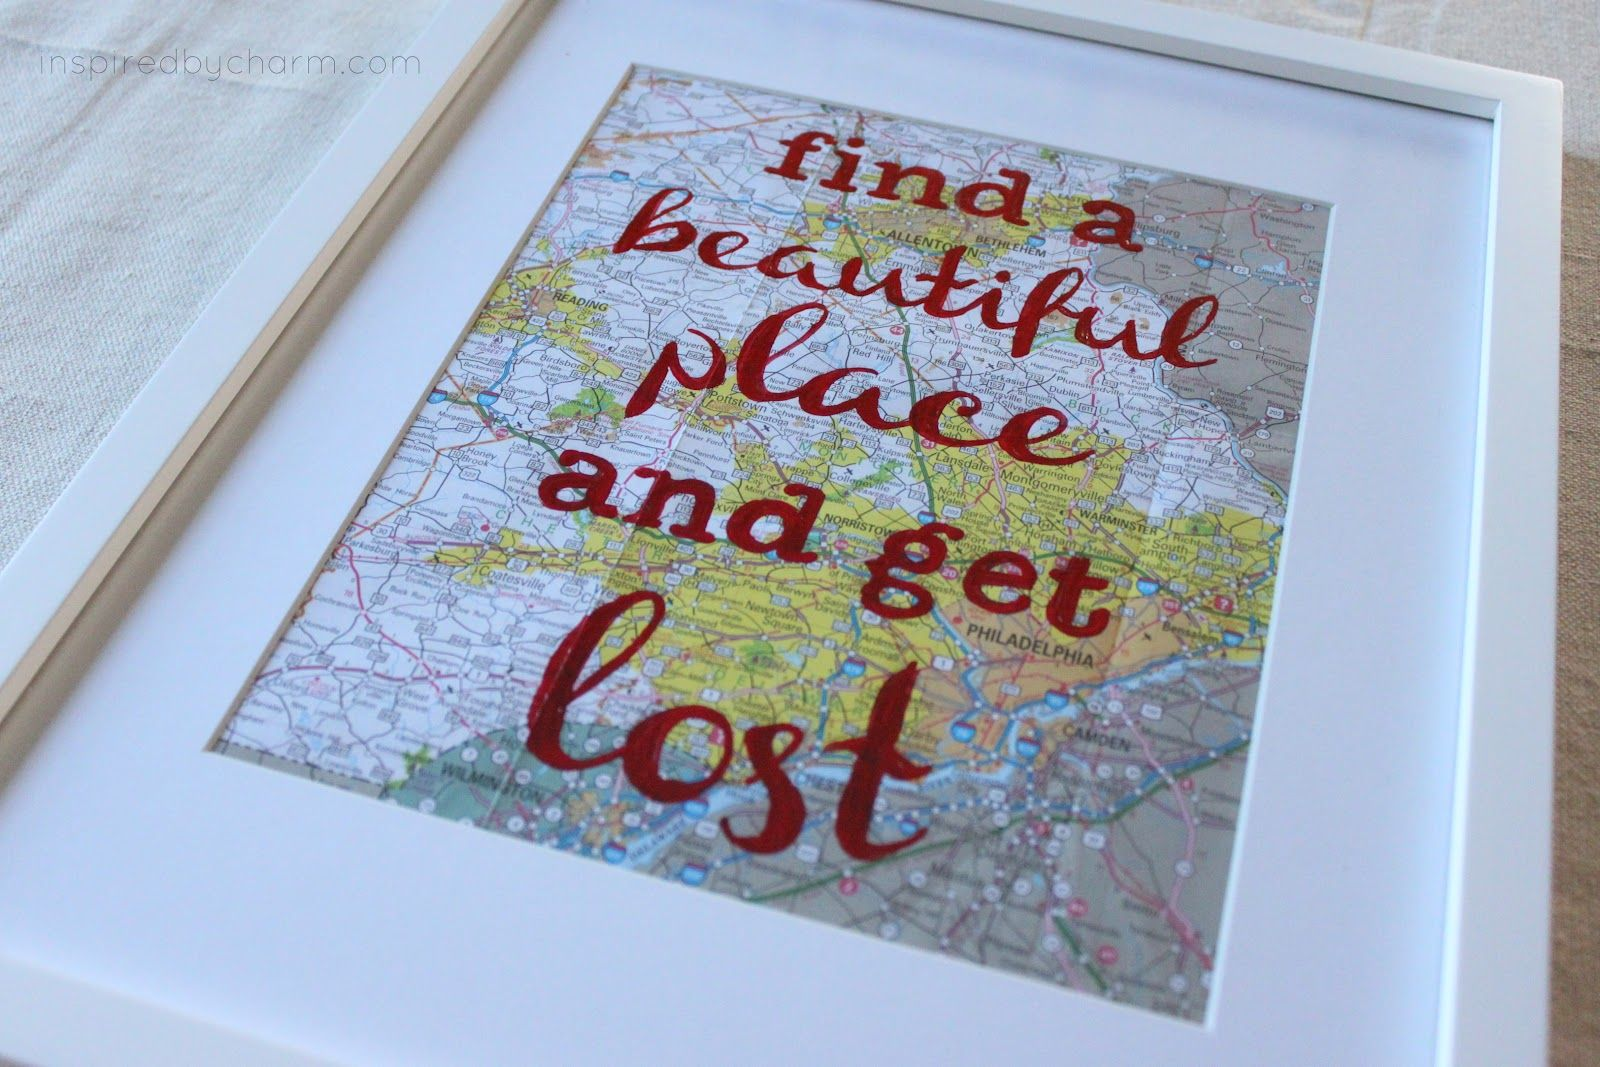 Don't be afraid to get lost. It's part of the adventure.